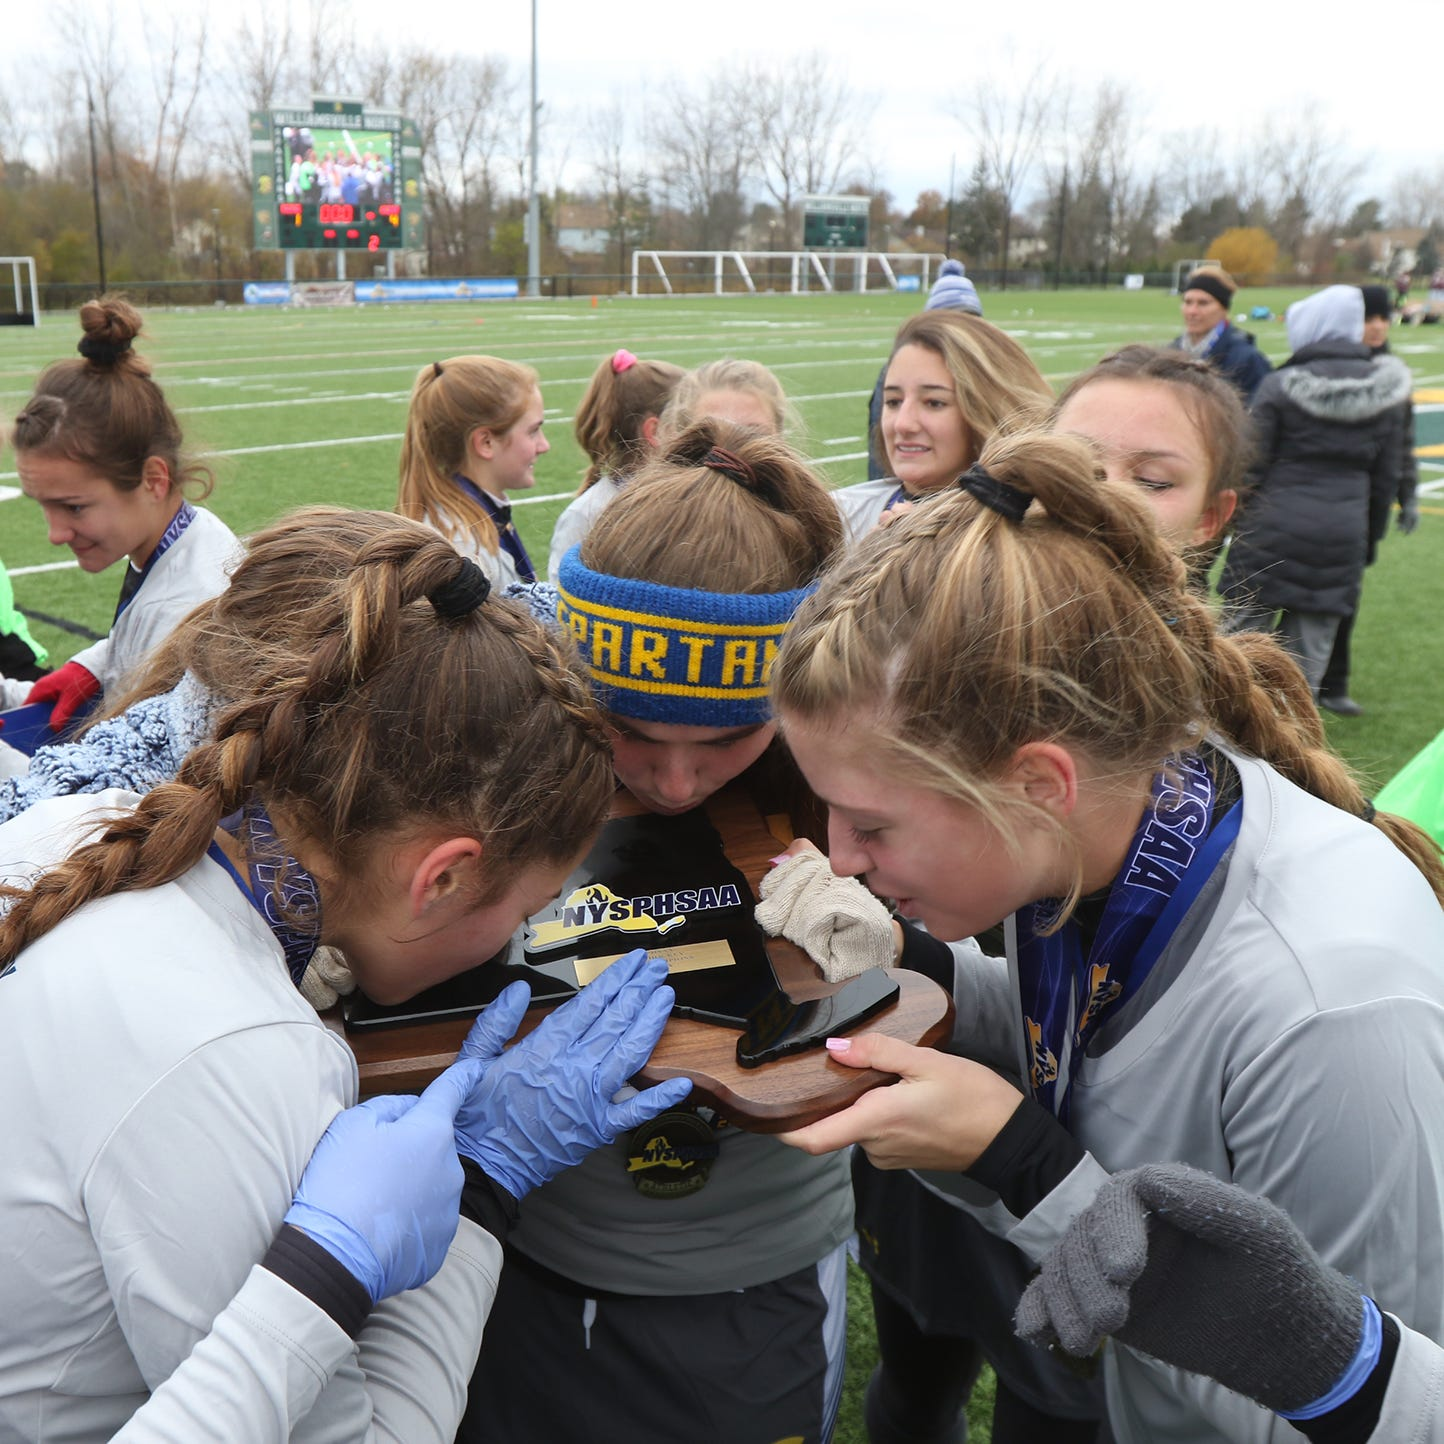 Maine-Endwell wins New York Class A field hockey championship against Williamsville North